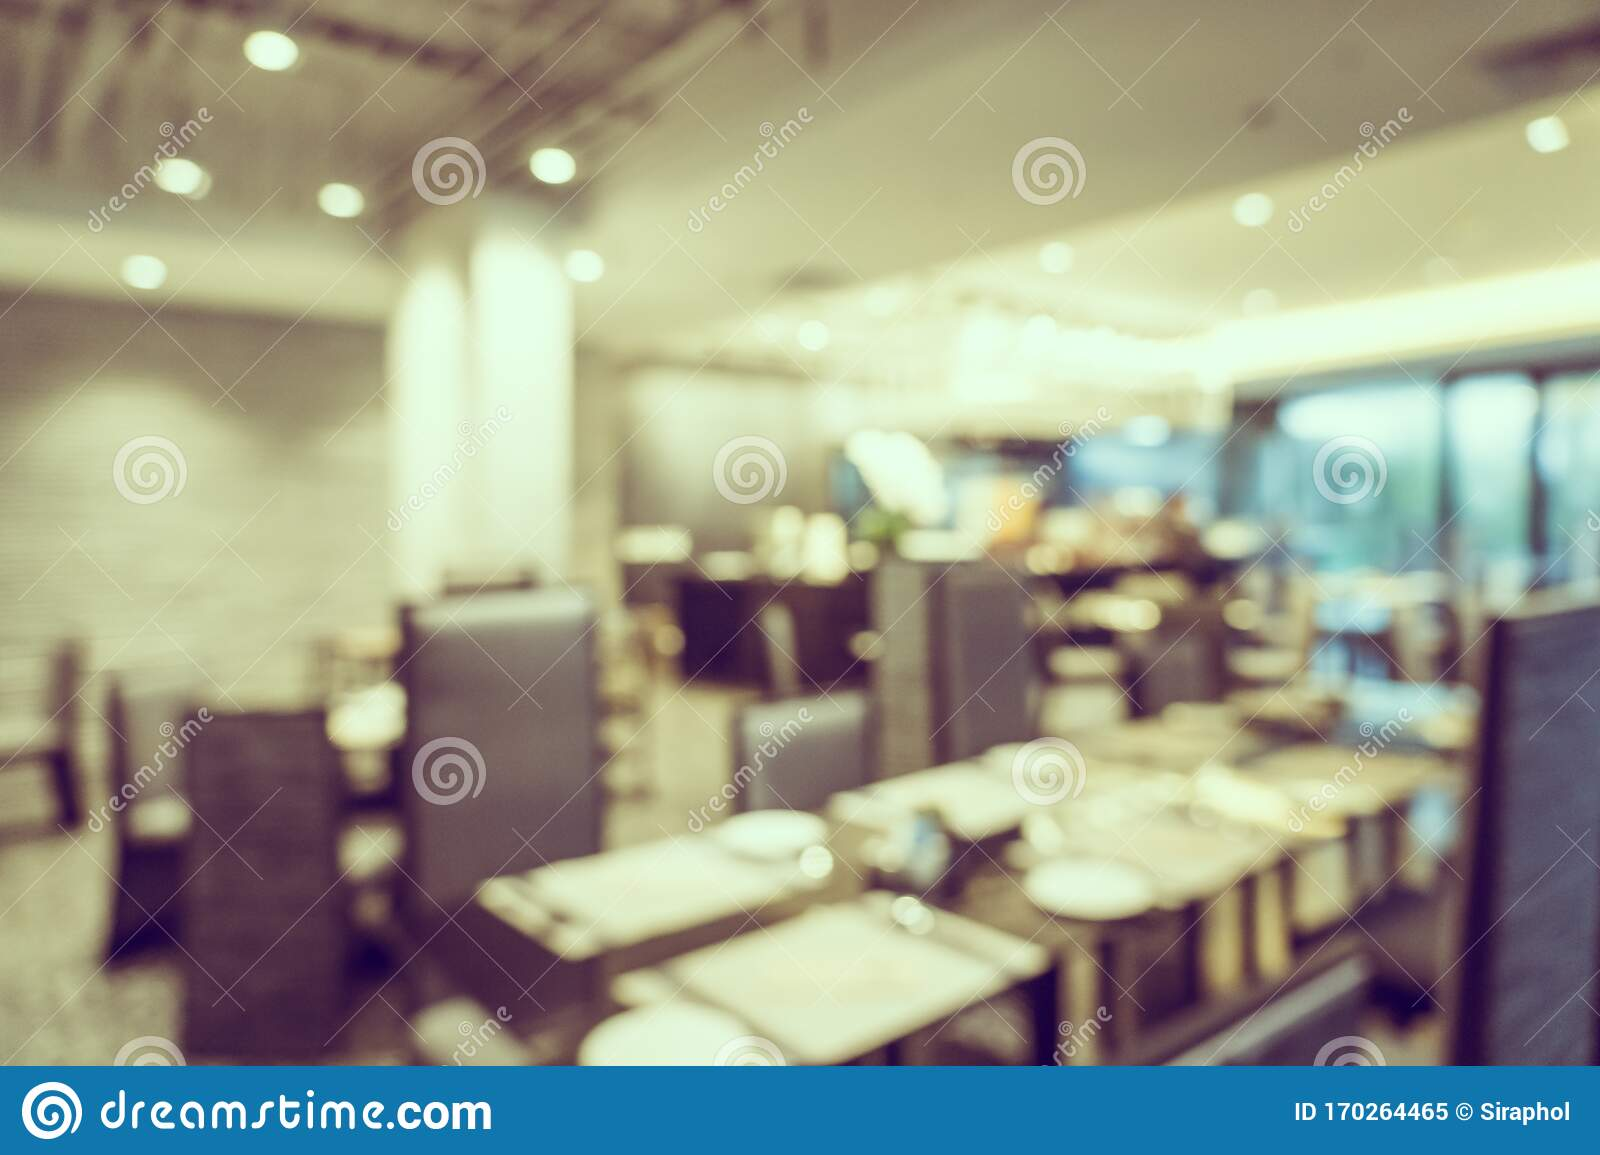 Abstract Blur Coffee Shop Cafe And Restaurant Interior For Background Stock Image Image Of Business Blurry 170264465